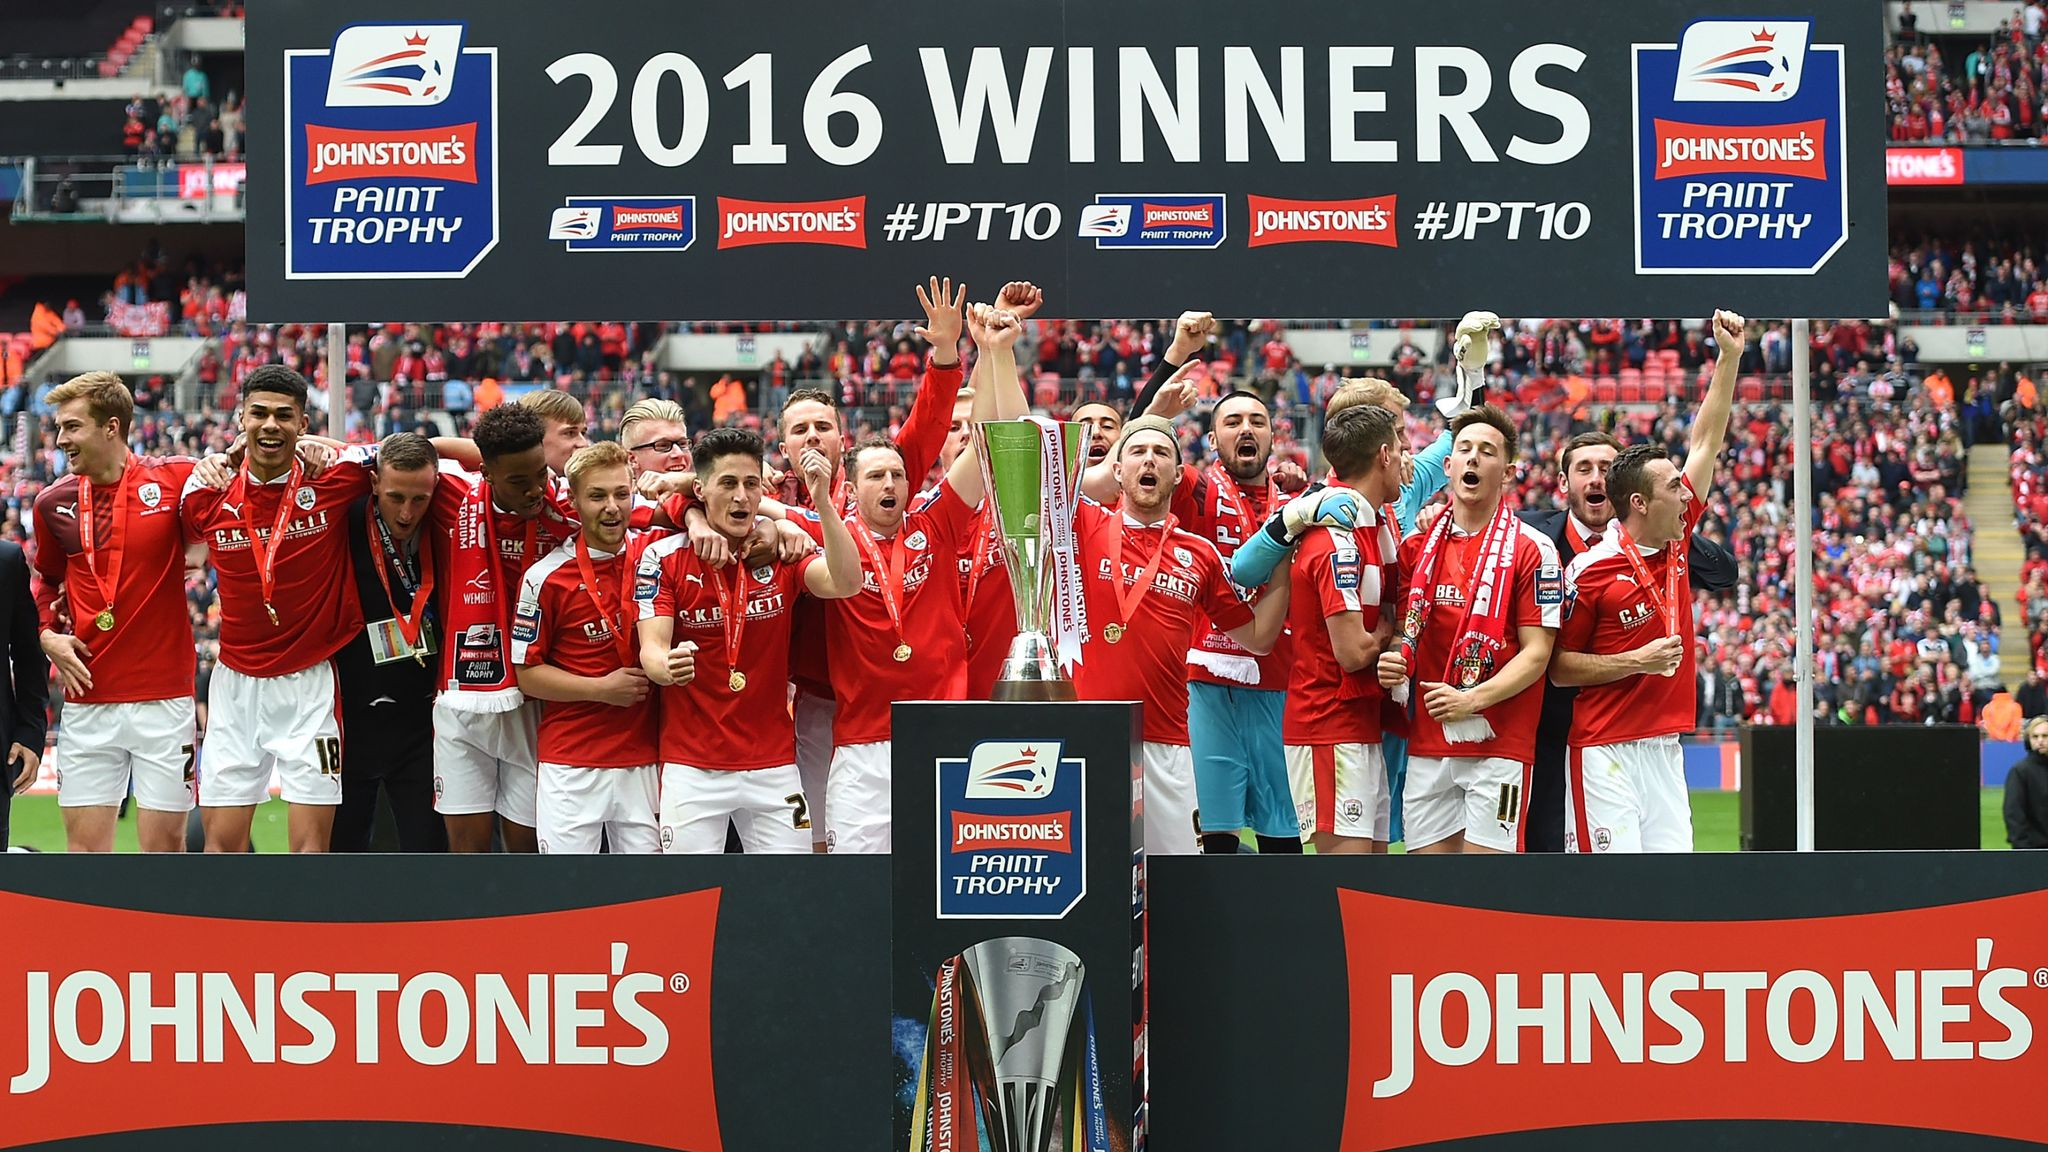 st johnstones paint trophy betting tips